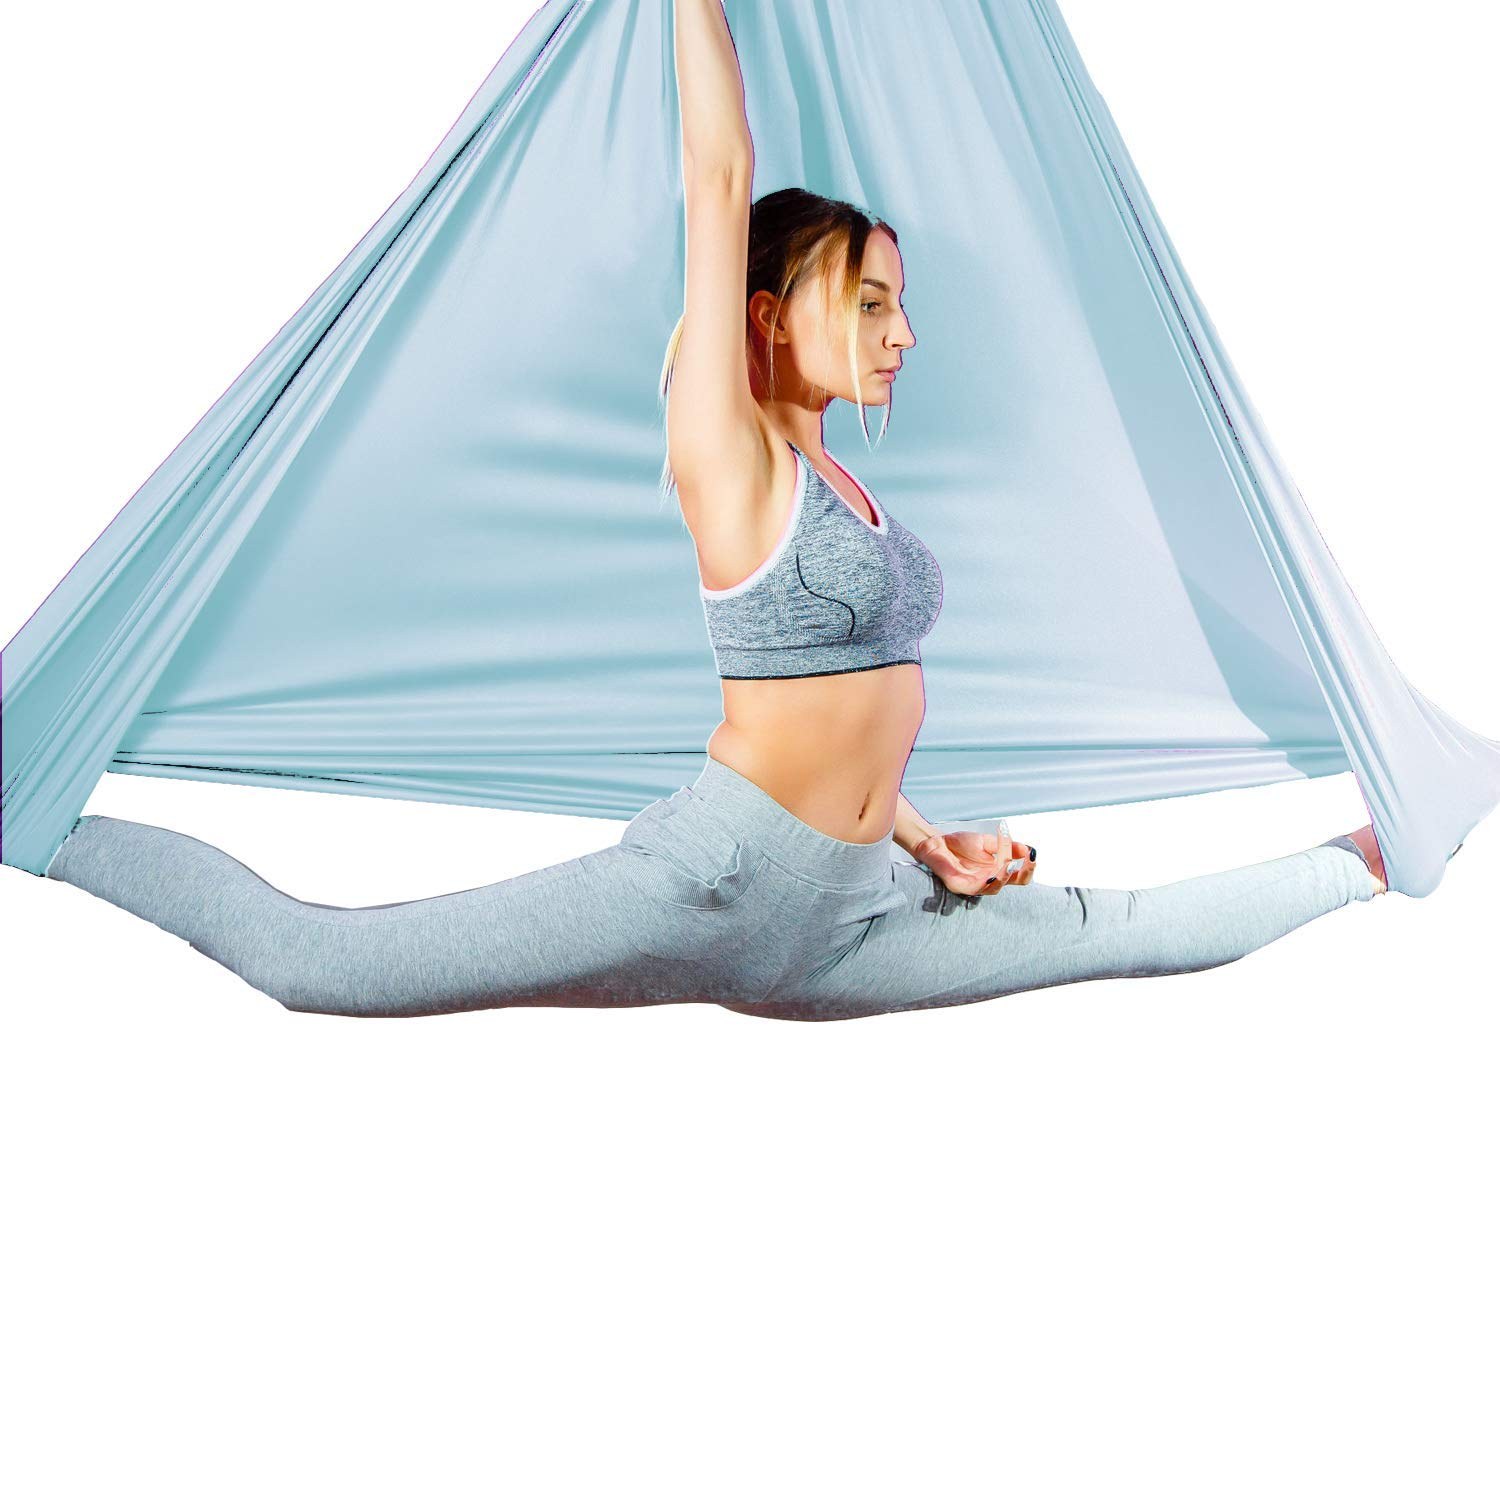 Aum Active Aerial Silks Fabric 4.5x3 Yards for Aerial Yoga Hammock Antigravity Yoga Trapeze Inversion Pilates for Ceiling Height Upto 10ft Sensory Swing